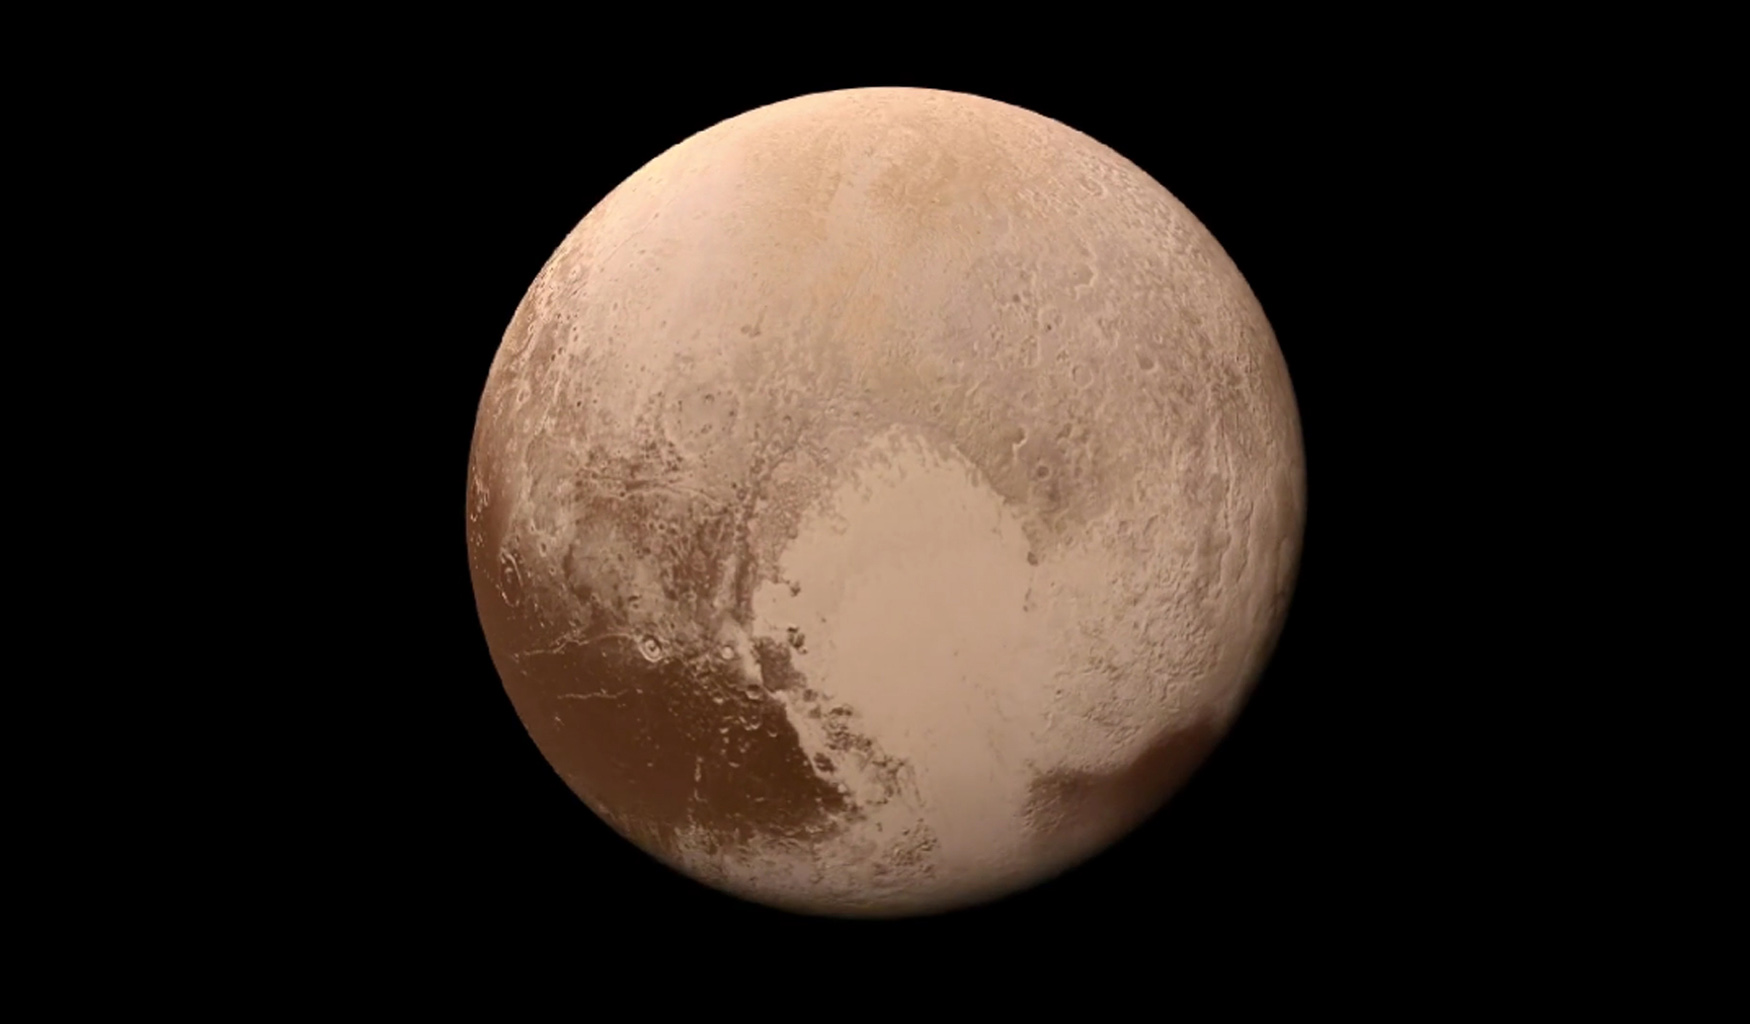 This image obtained by NASA's New Horizons spacecraft is from a movie made from more than 100 images taken by NASA's New Horizons spacecraft over six weeks of approach and close flyby in the summer of 2015.